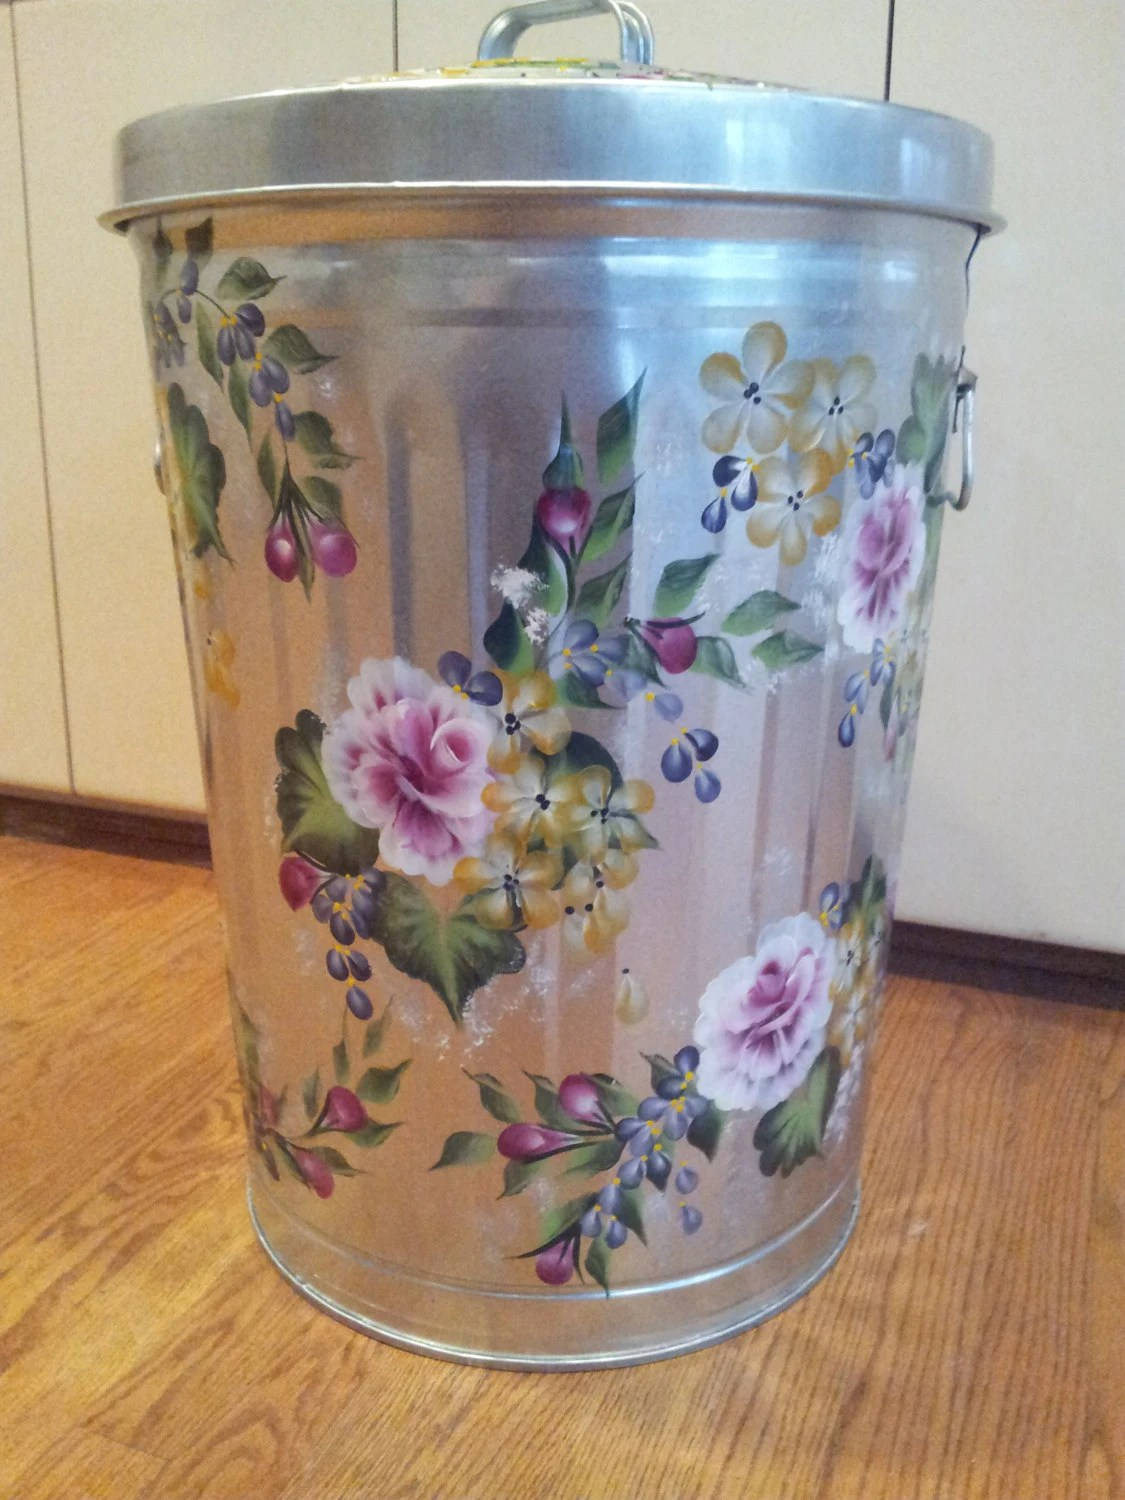 Colored Kitchen Trash Cans 20 Gallon Hand Painted Galvanized Trash Can